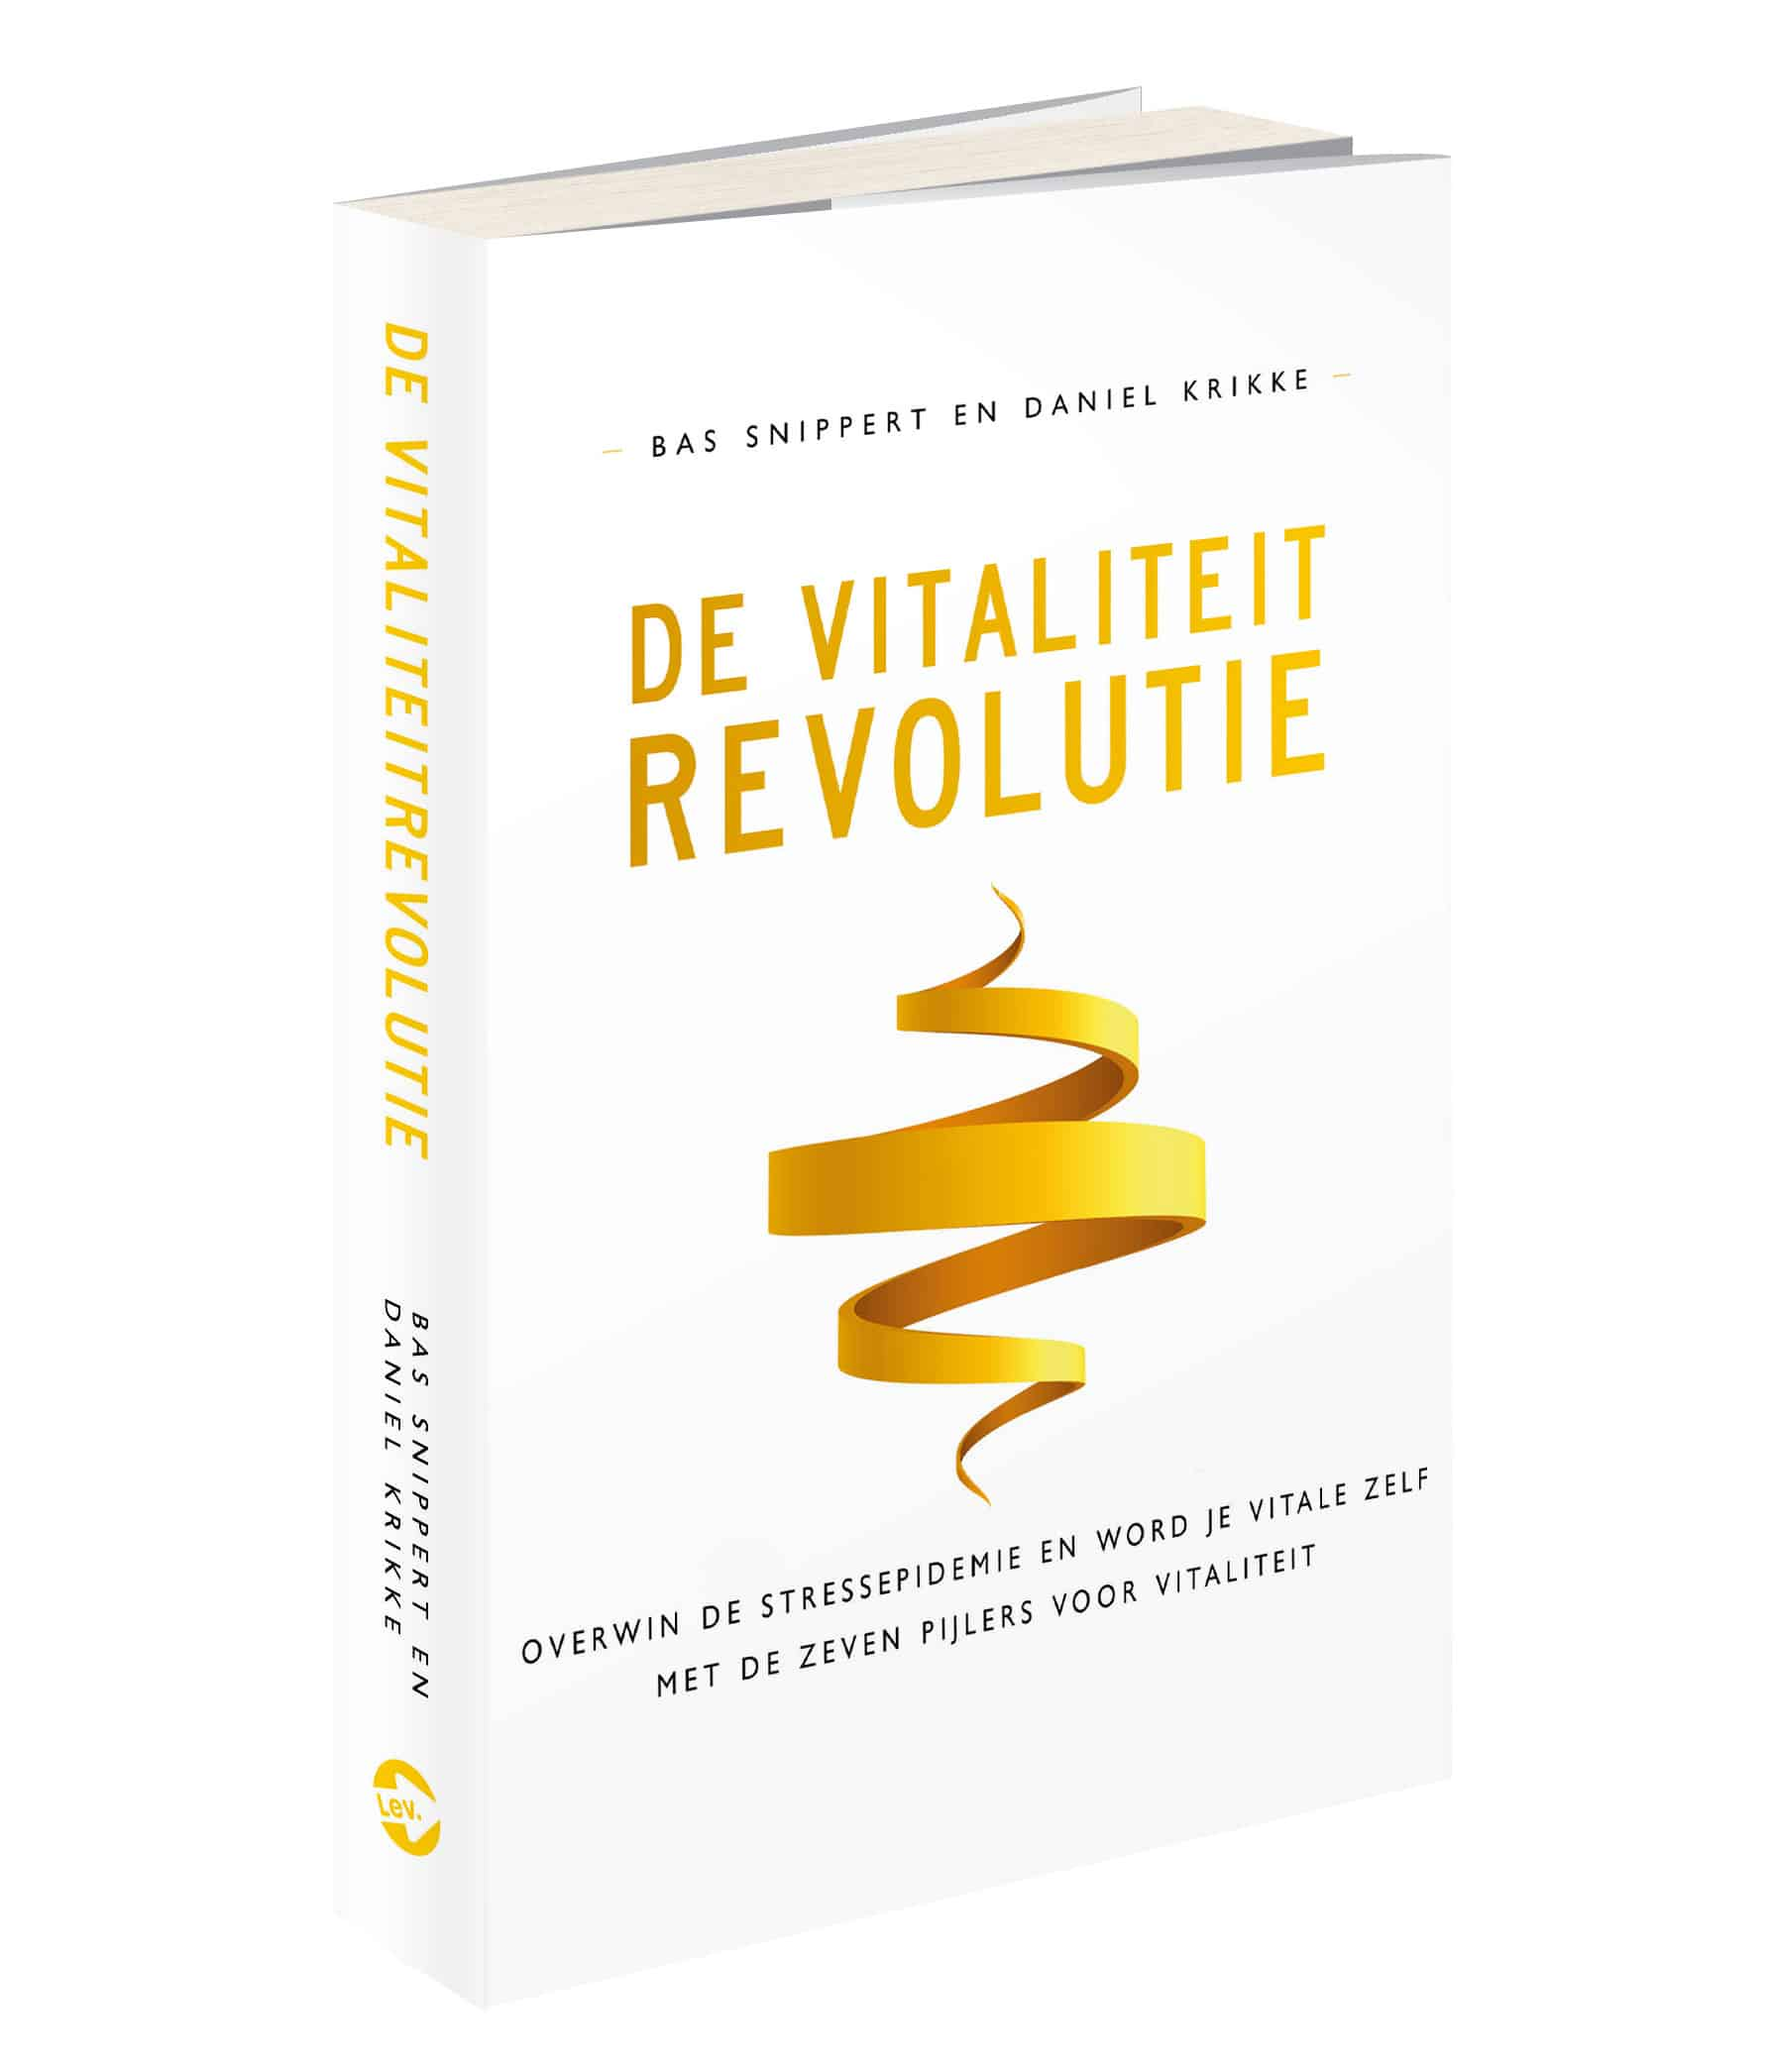 DeVitaliteitrevolutieCover Cropped